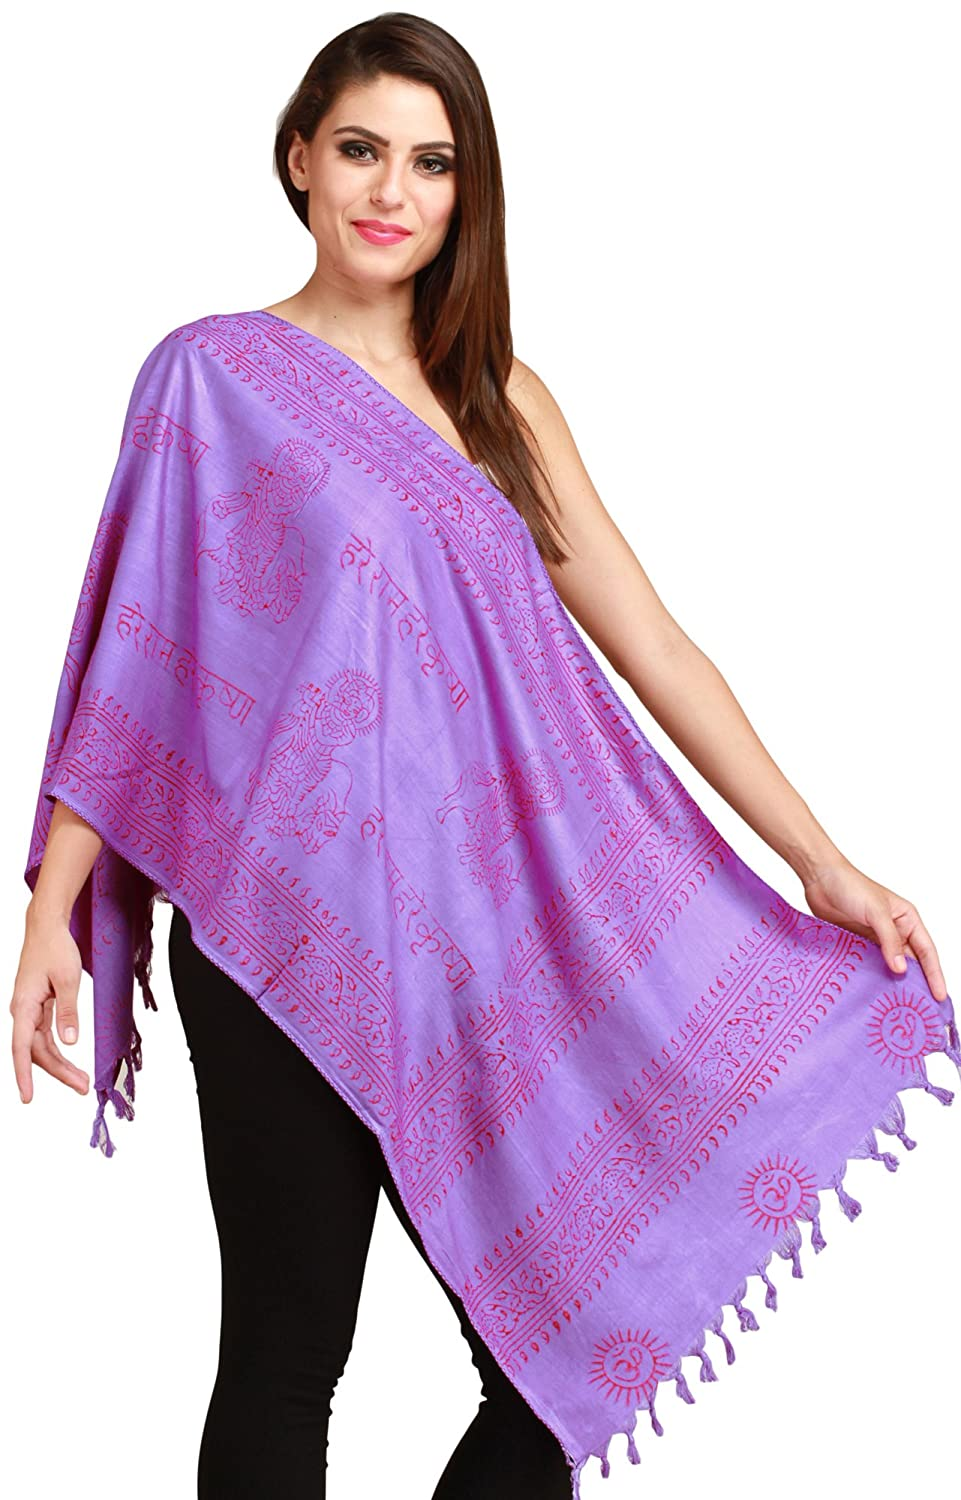 Exotic India Dahlia-Purple Hare Rama Hare Krishna Prayer Scarf SRB88